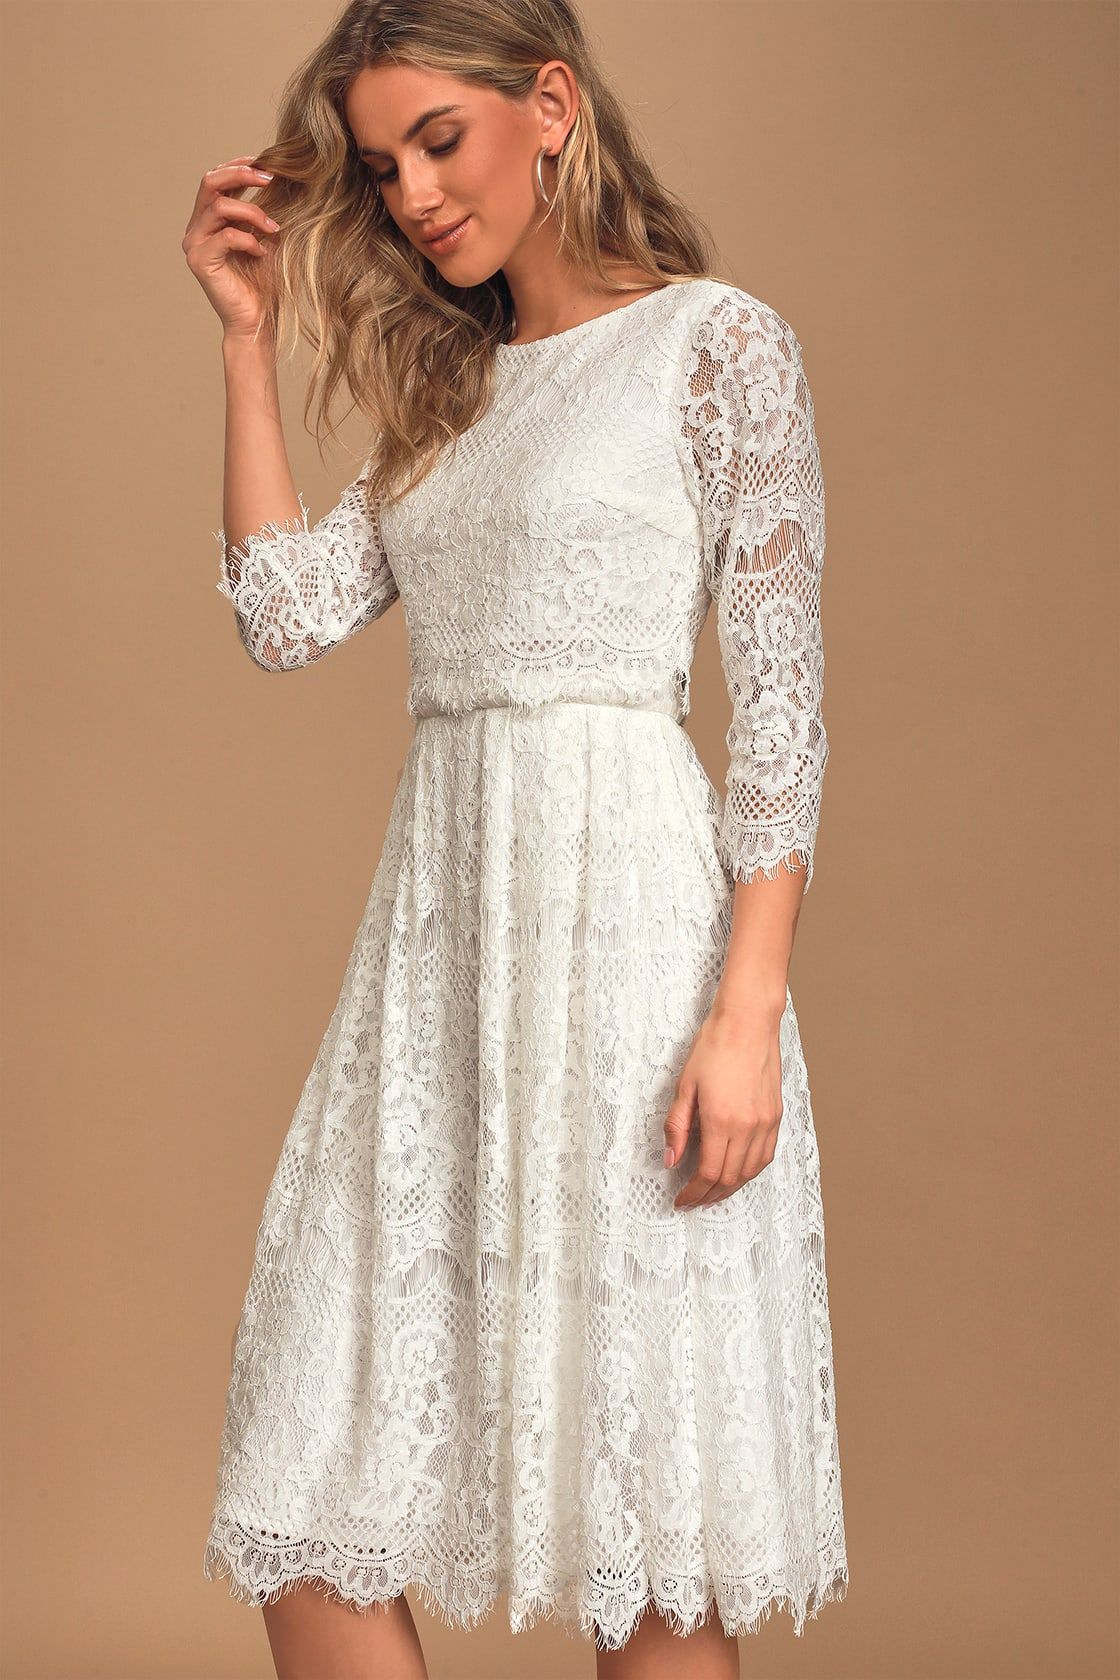 Forever Your Love White Lace Three Quarter Sleeve Midi Dress Midi Short Sleeve Dress White Lace Midi Dress Lace White Dress [ 1680 x 1120 Pixel ]